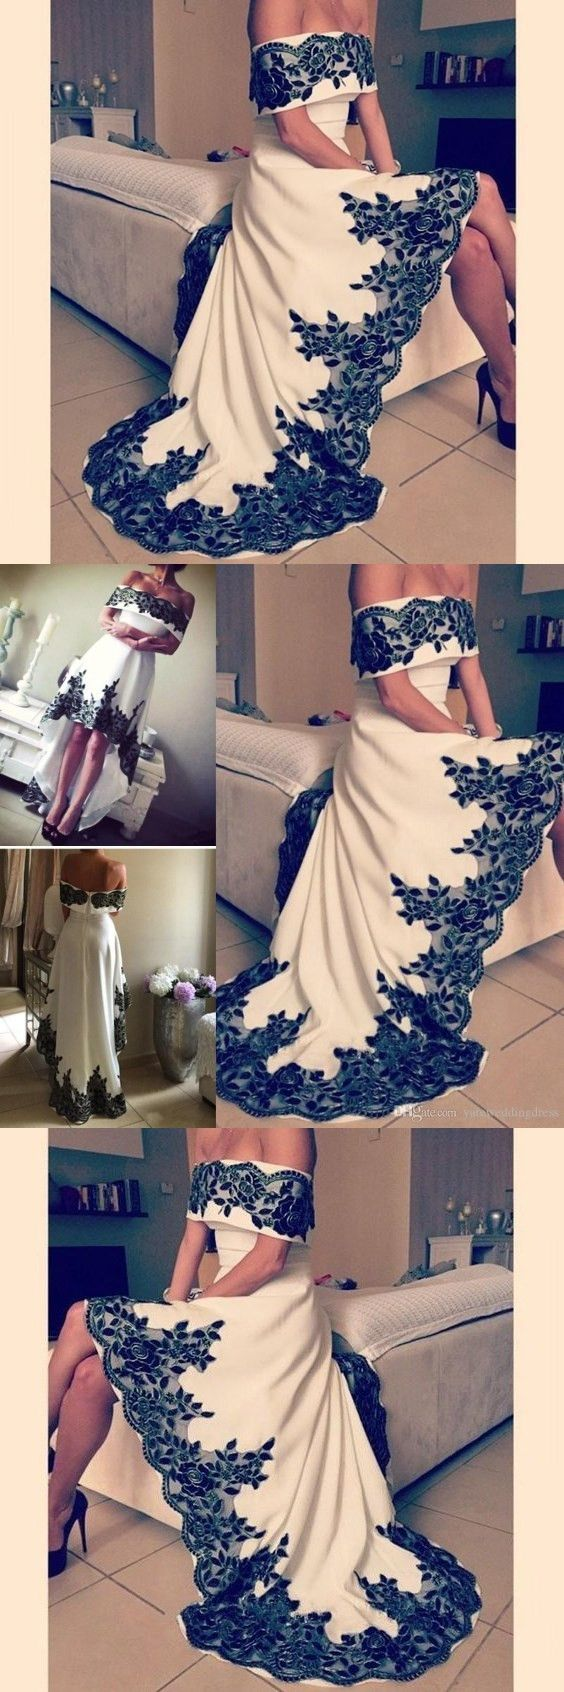 Elegant Prom Dresses Lace Party Dresses Evening Wear Short Sleeve Off Shouler Hi Low Formal Arabic Dresses M0295#prom #promdress #promdresses #longpromdress #promgowns #promgown #2018style #newfashion #newstyles #2018newprom#eveninggowns#shortsleeve#offshoulder#highlow#lace